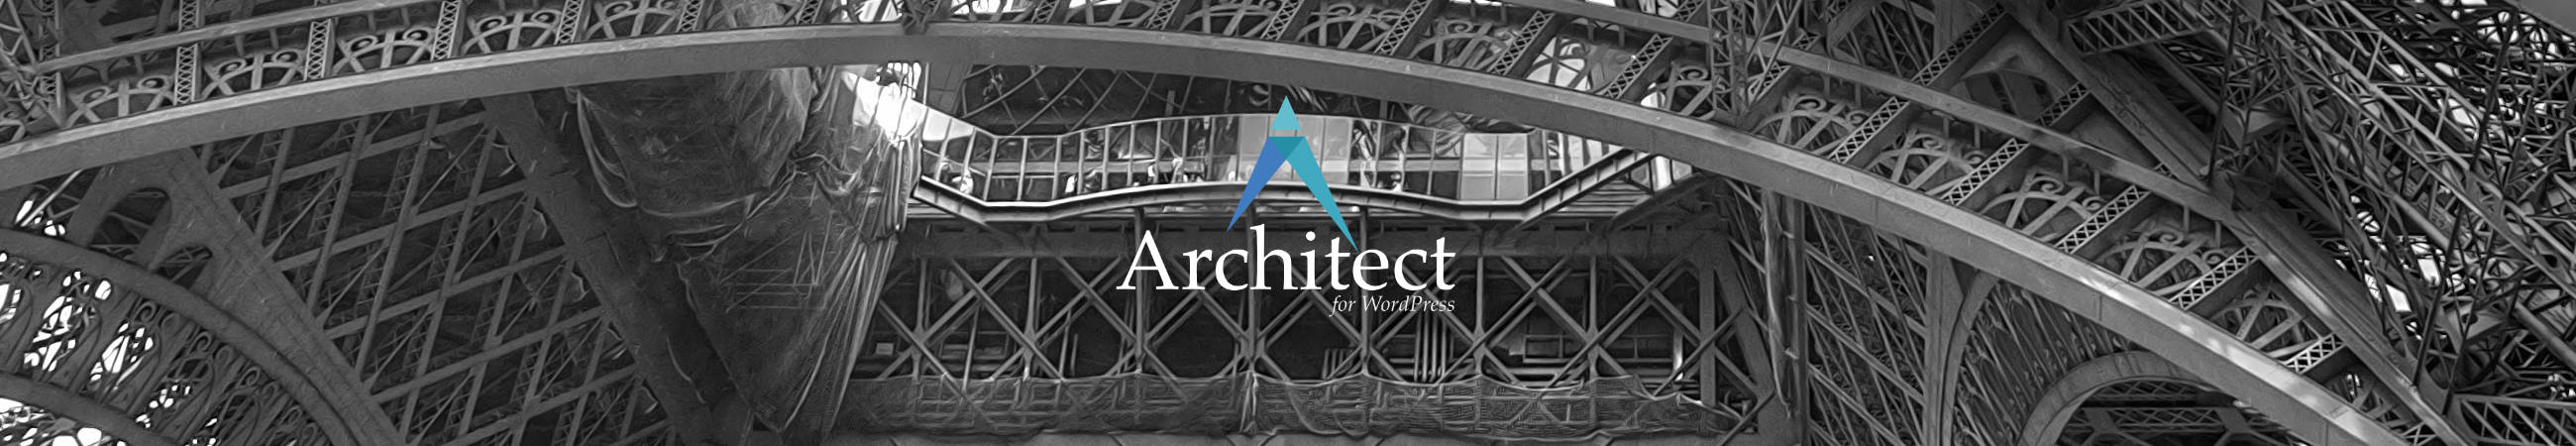 architect-eiffel-banner